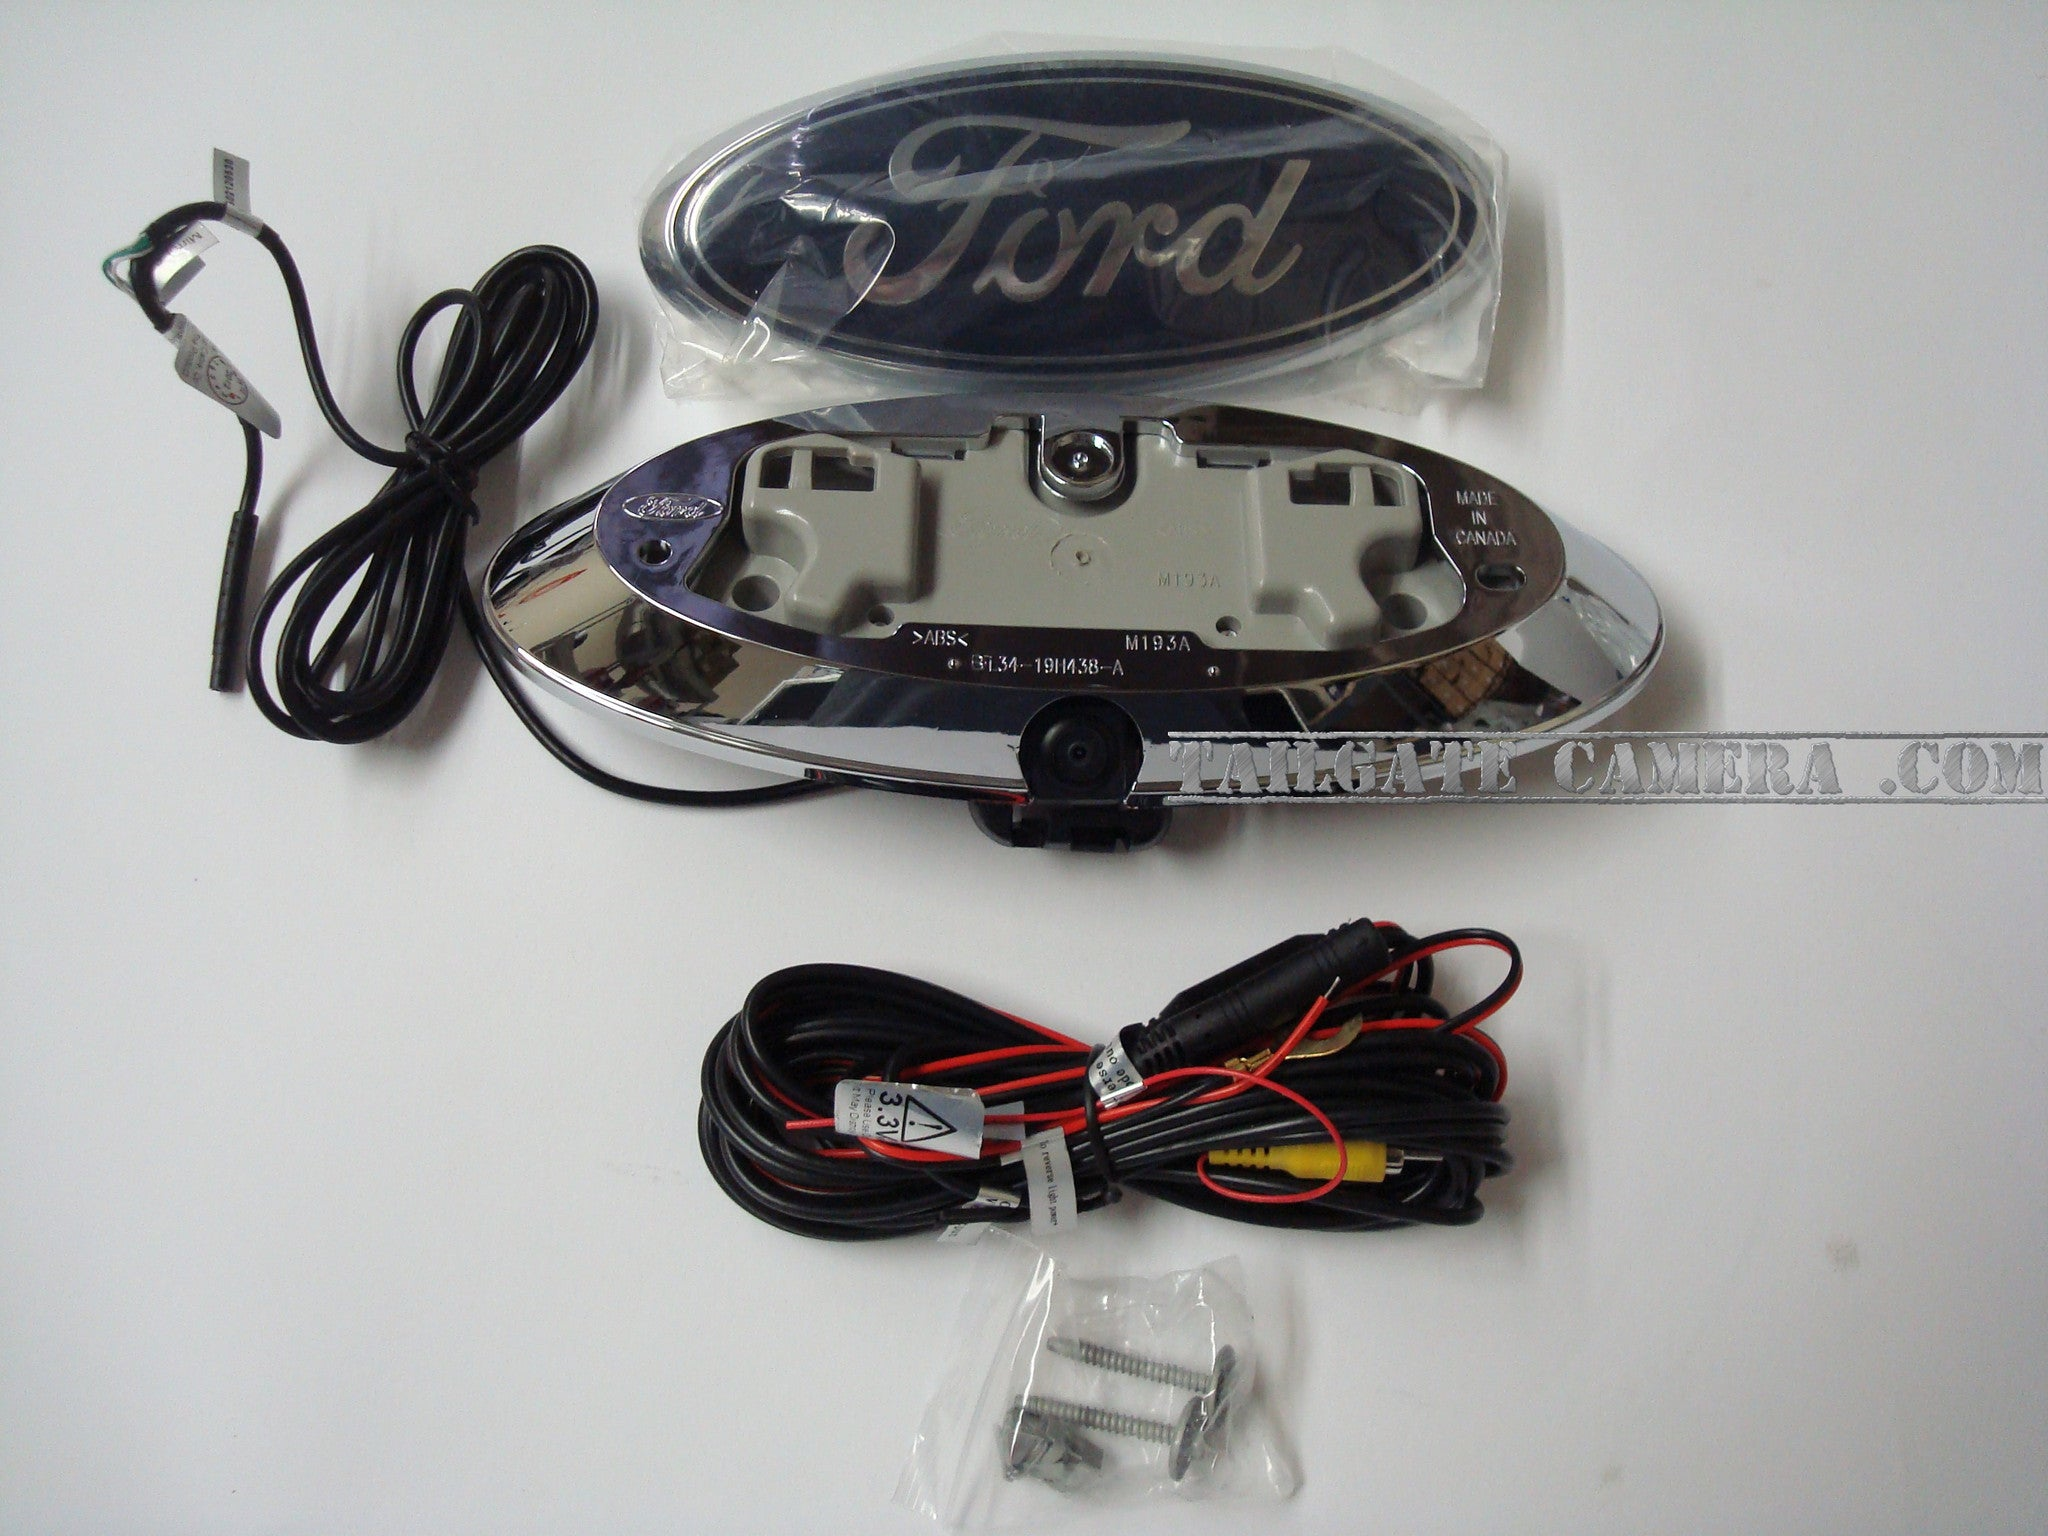 Fordf150tailgateemblemcamerafordf250tailgatecameraf350 Back Up Camera For Car Wiring Diagrams Fordtailgateemblembackupcamerabackupcamera